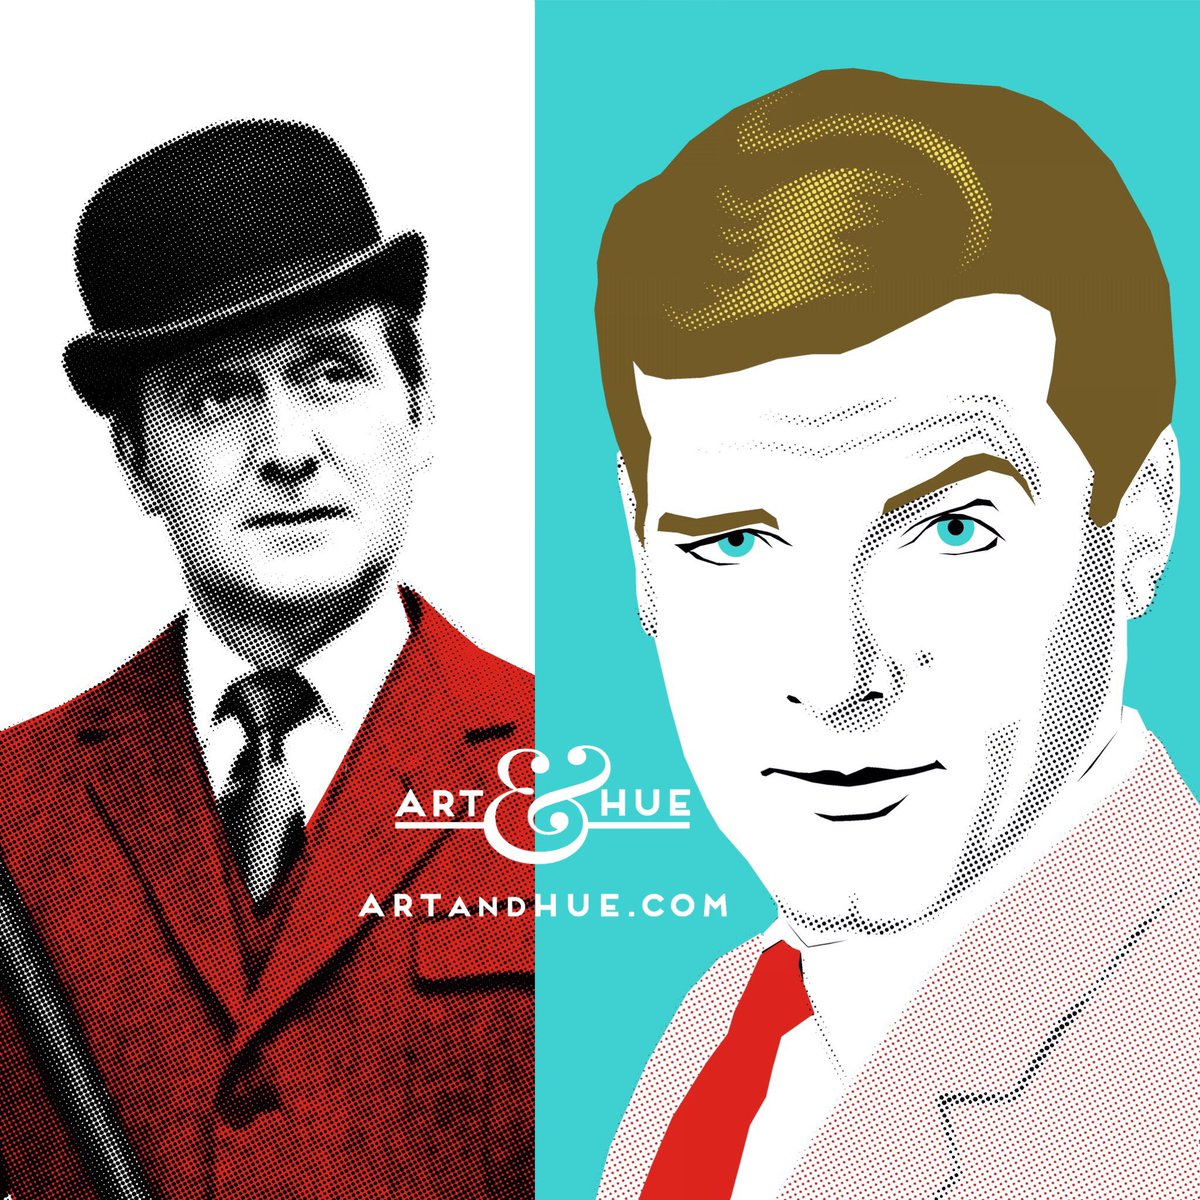 #OnThisDay in Japan 1985  #AViewToAKill with #RogerMoore as #JamesBond &amp; #PatrickMacnee     http:// artandhue.com/spies  &nbsp;     http:// artandhue.com/theavengers  &nbsp;  <br>http://pic.twitter.com/6iY73DS8nk